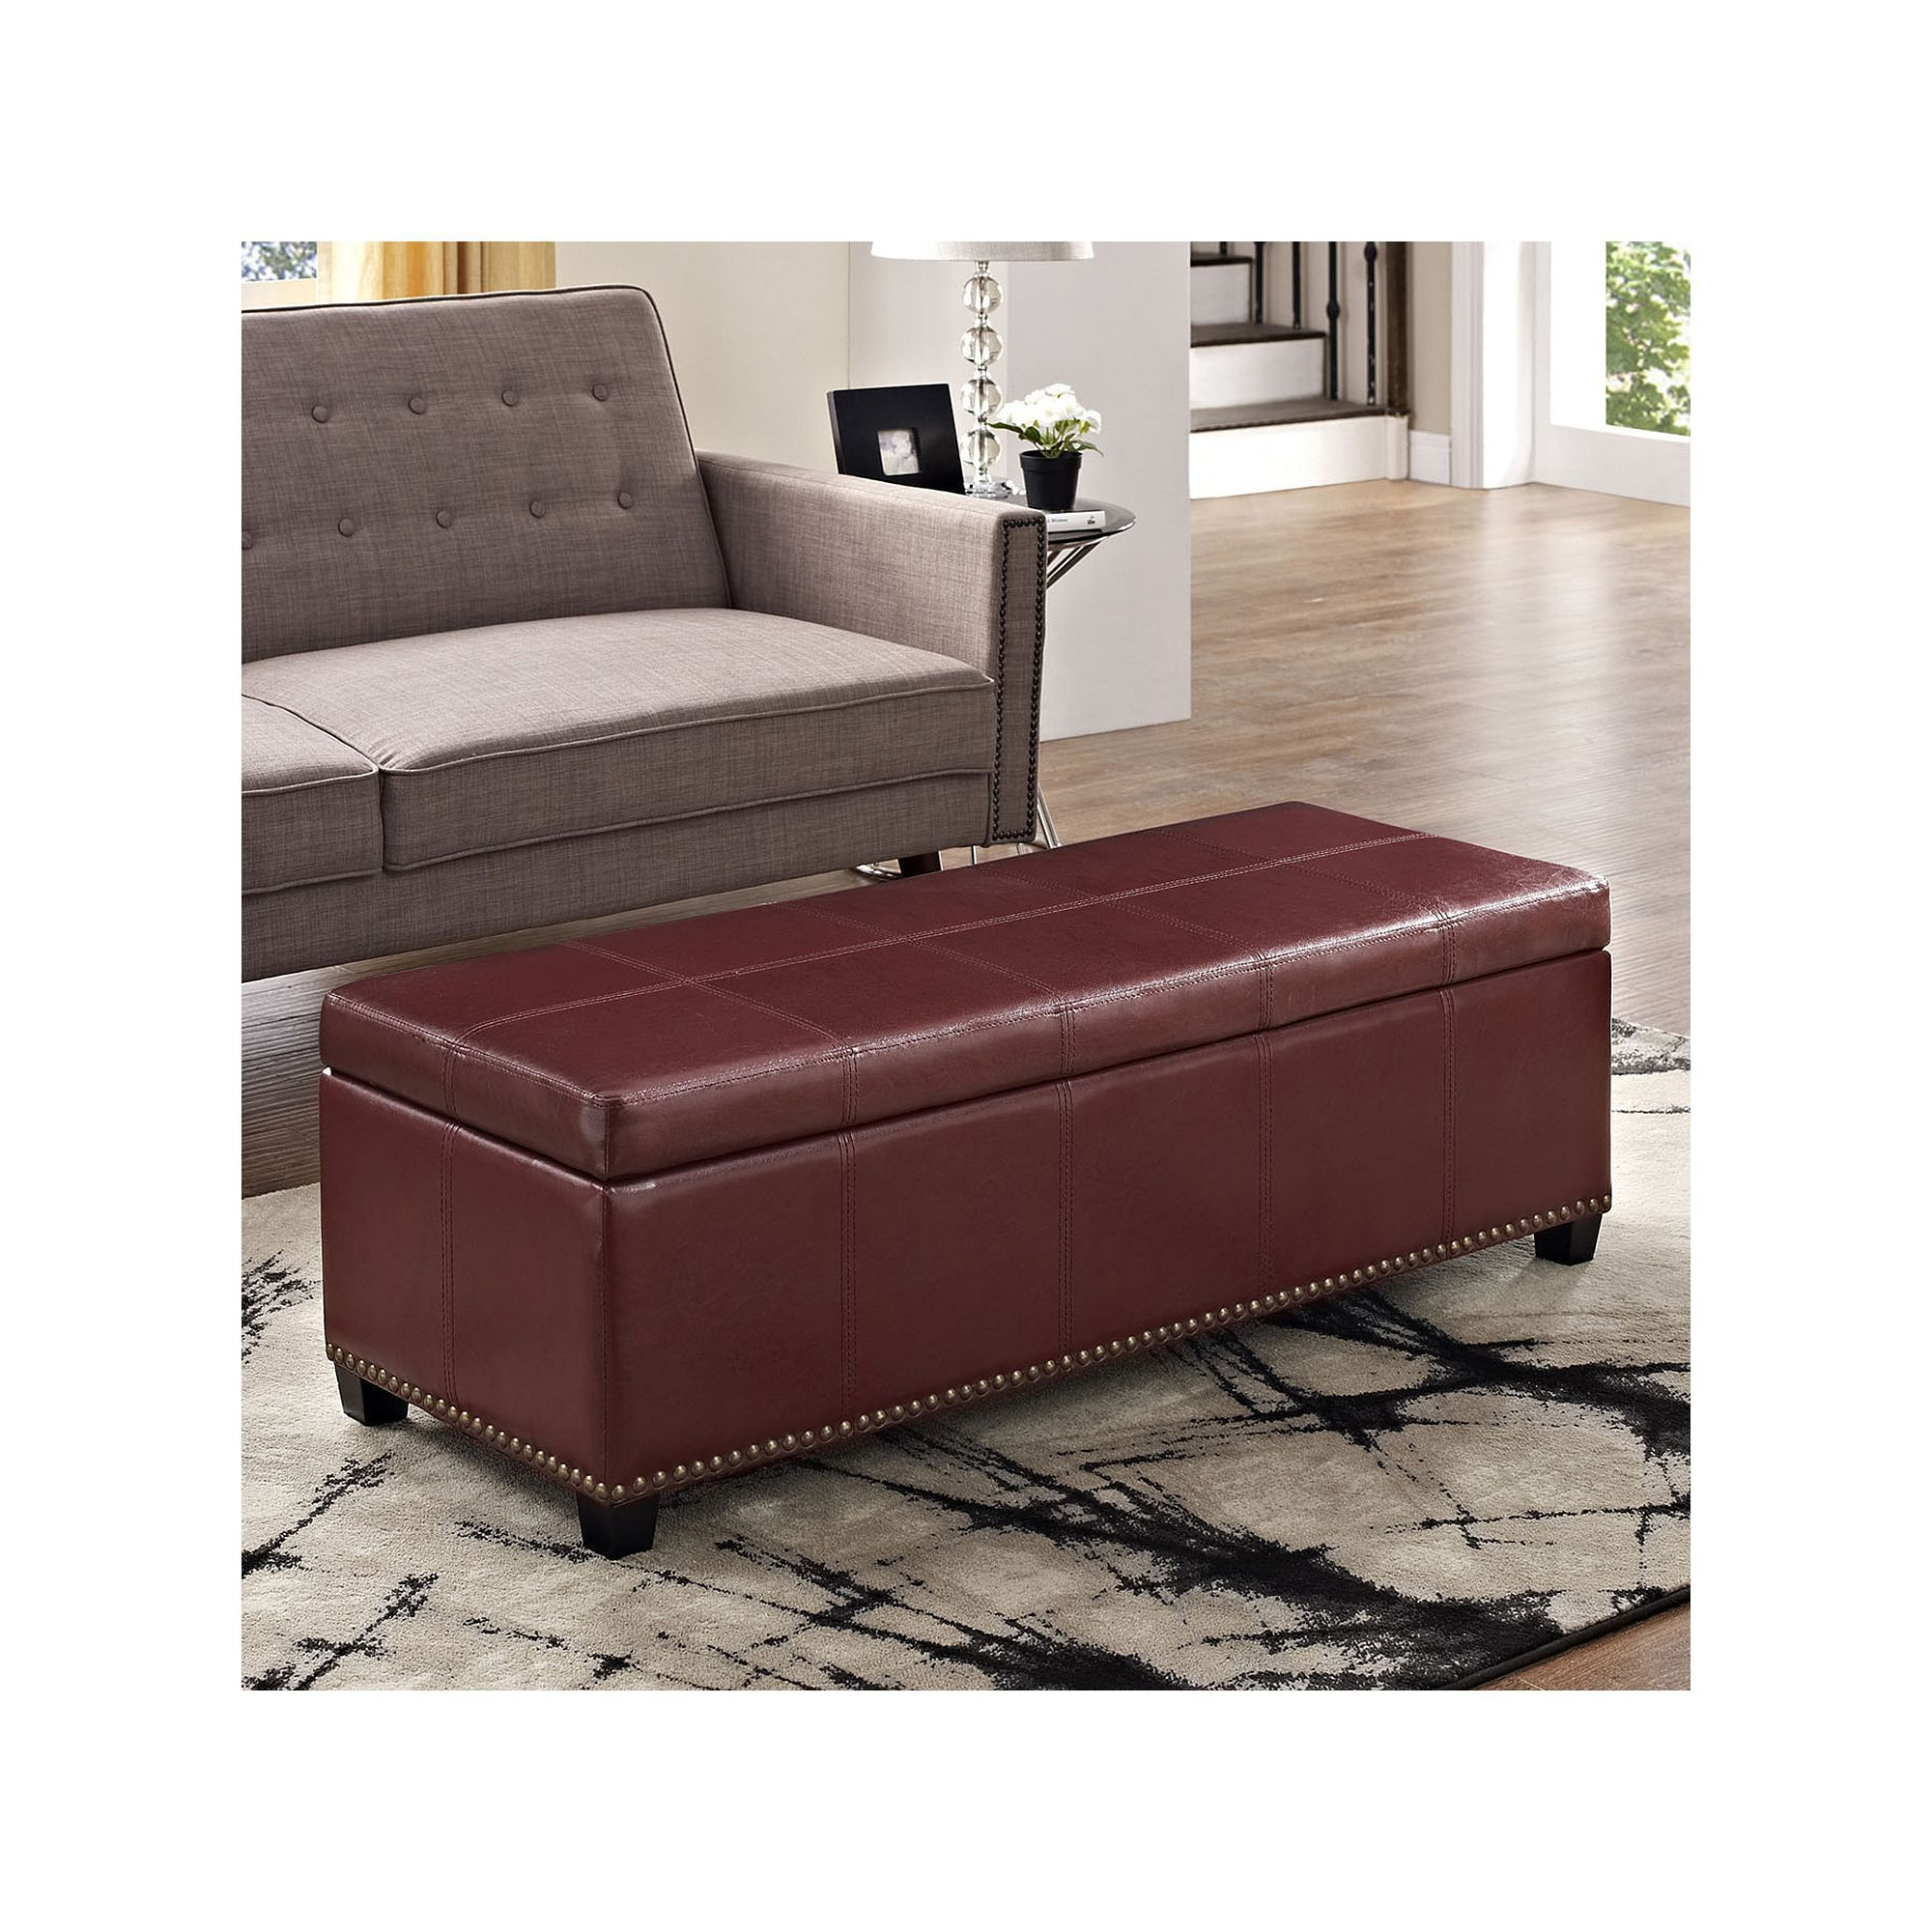 Simpli Home Kingsley Rectangular Storage Ottoman Bench, Red